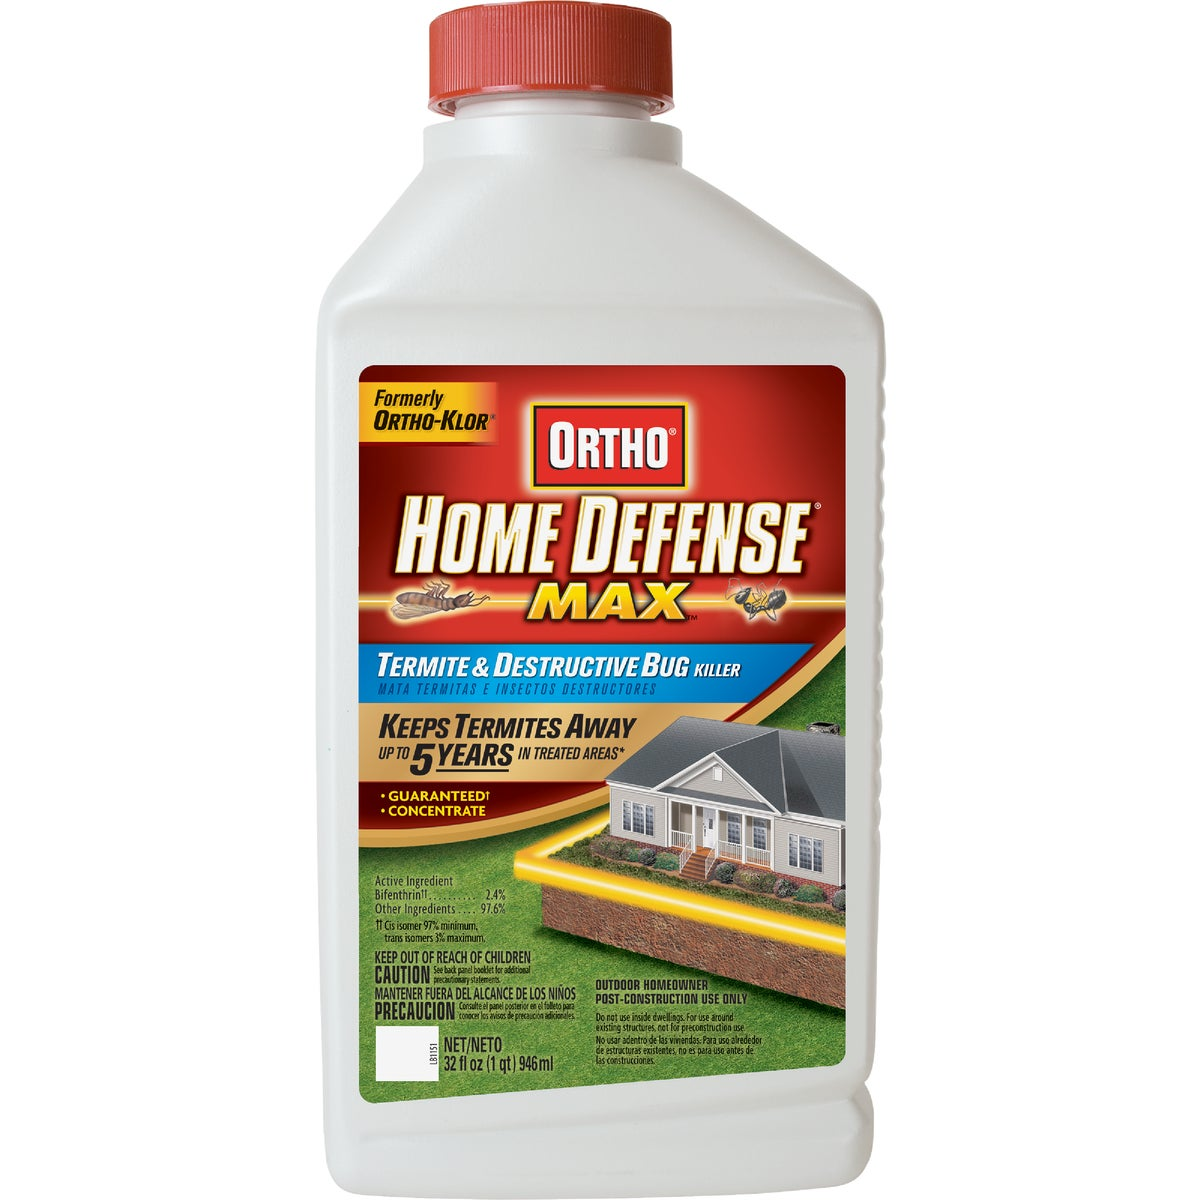 QT TERMITE/D.BUG KILLER - 0194260 by Scotts Company